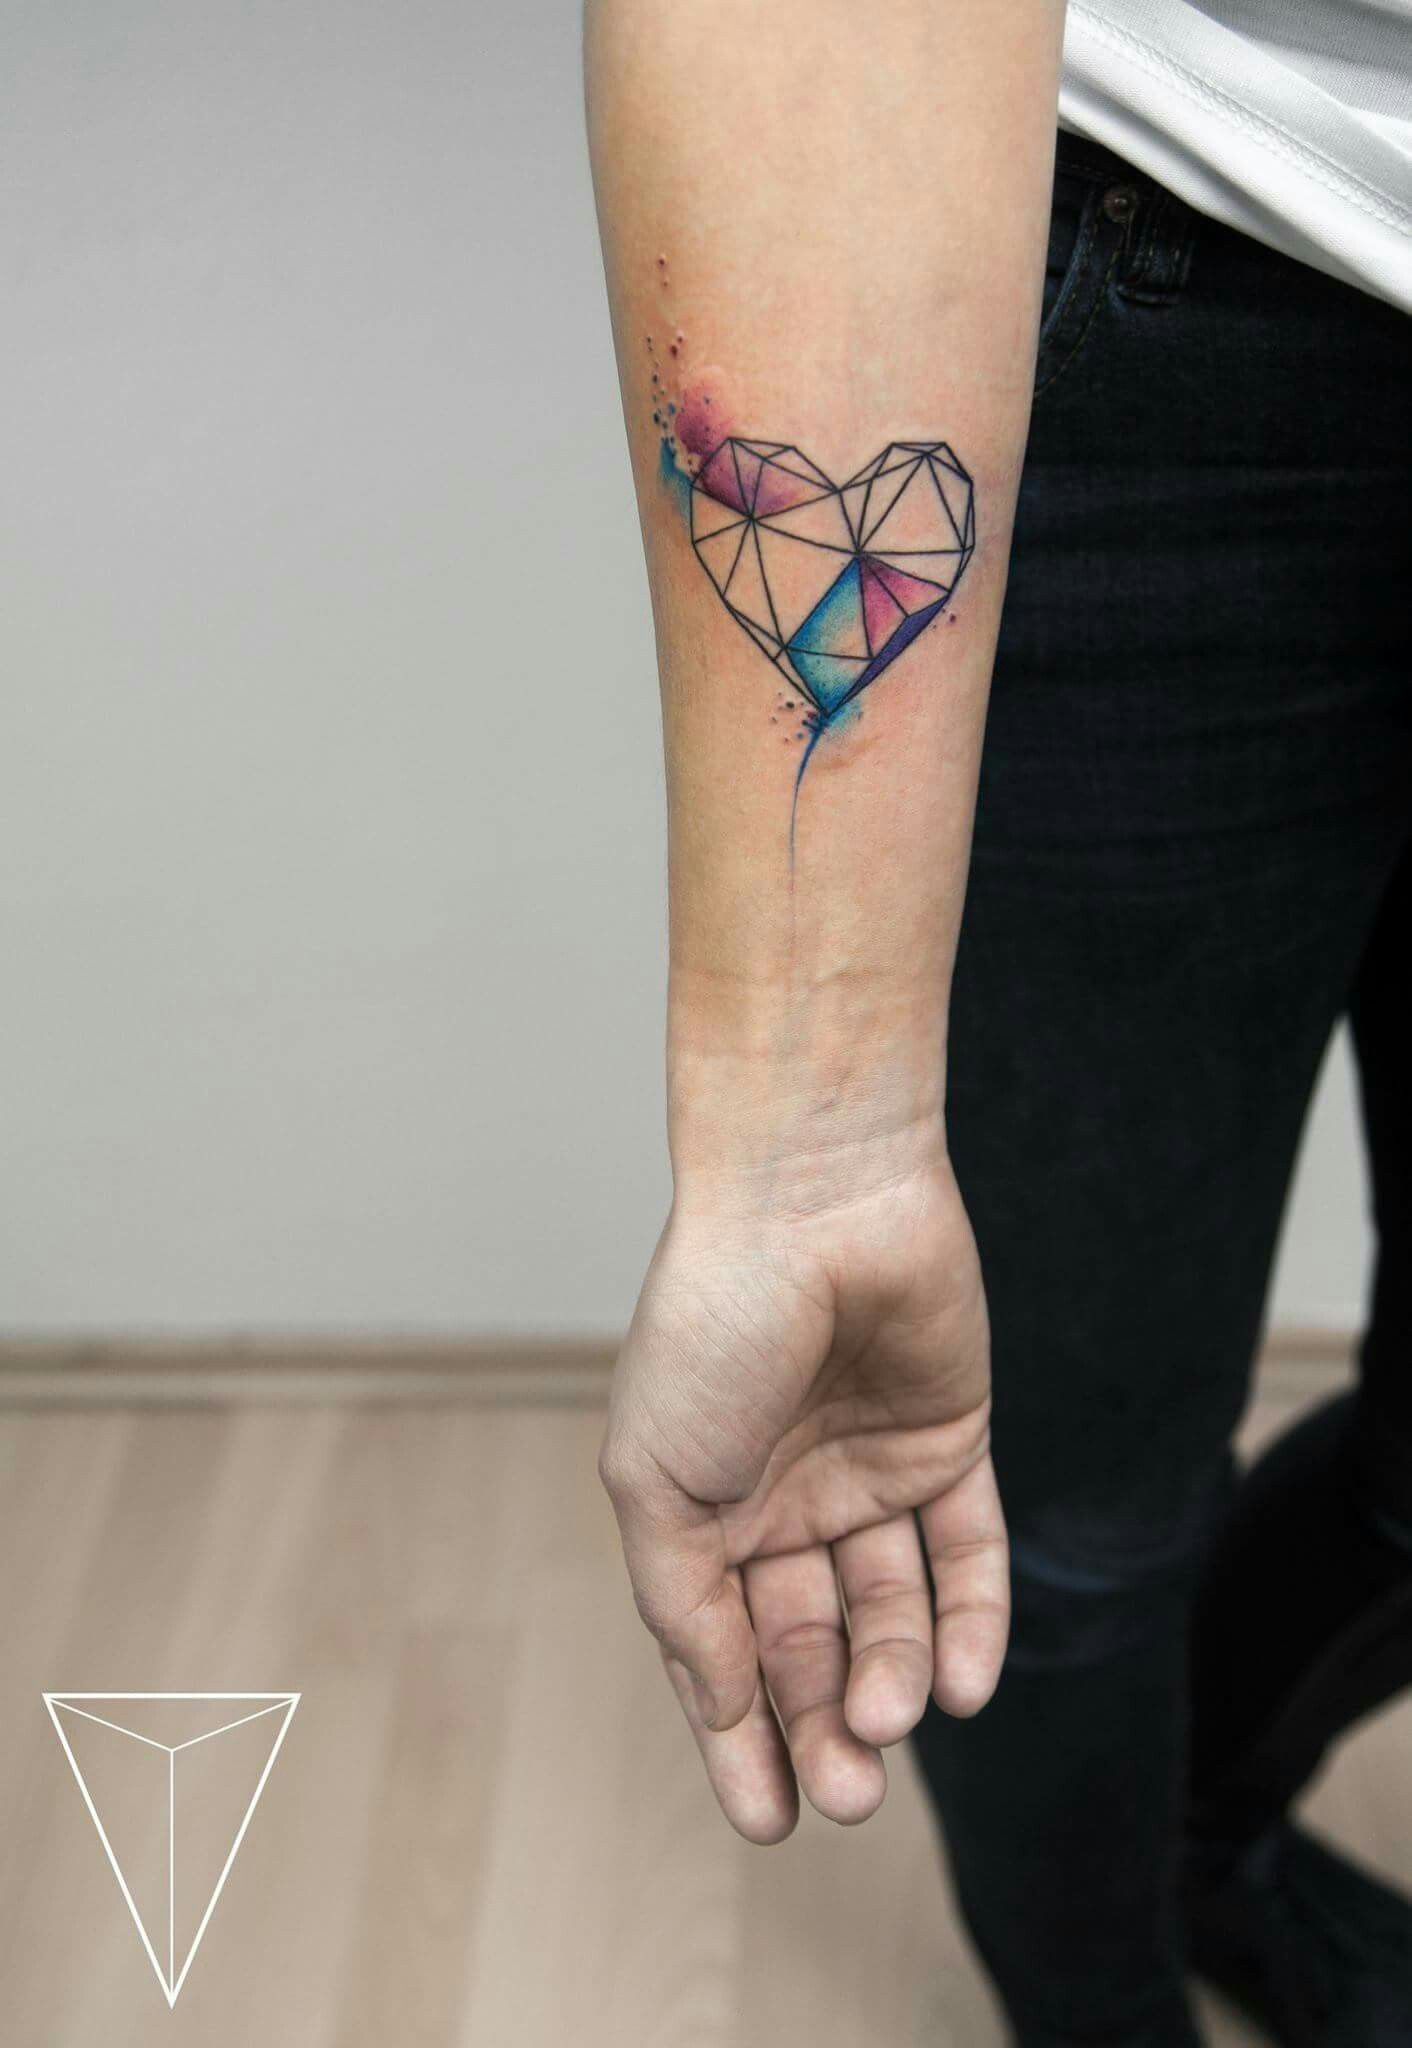 Watercolor Tattoo Arm Heart Prism Origami Misspank More